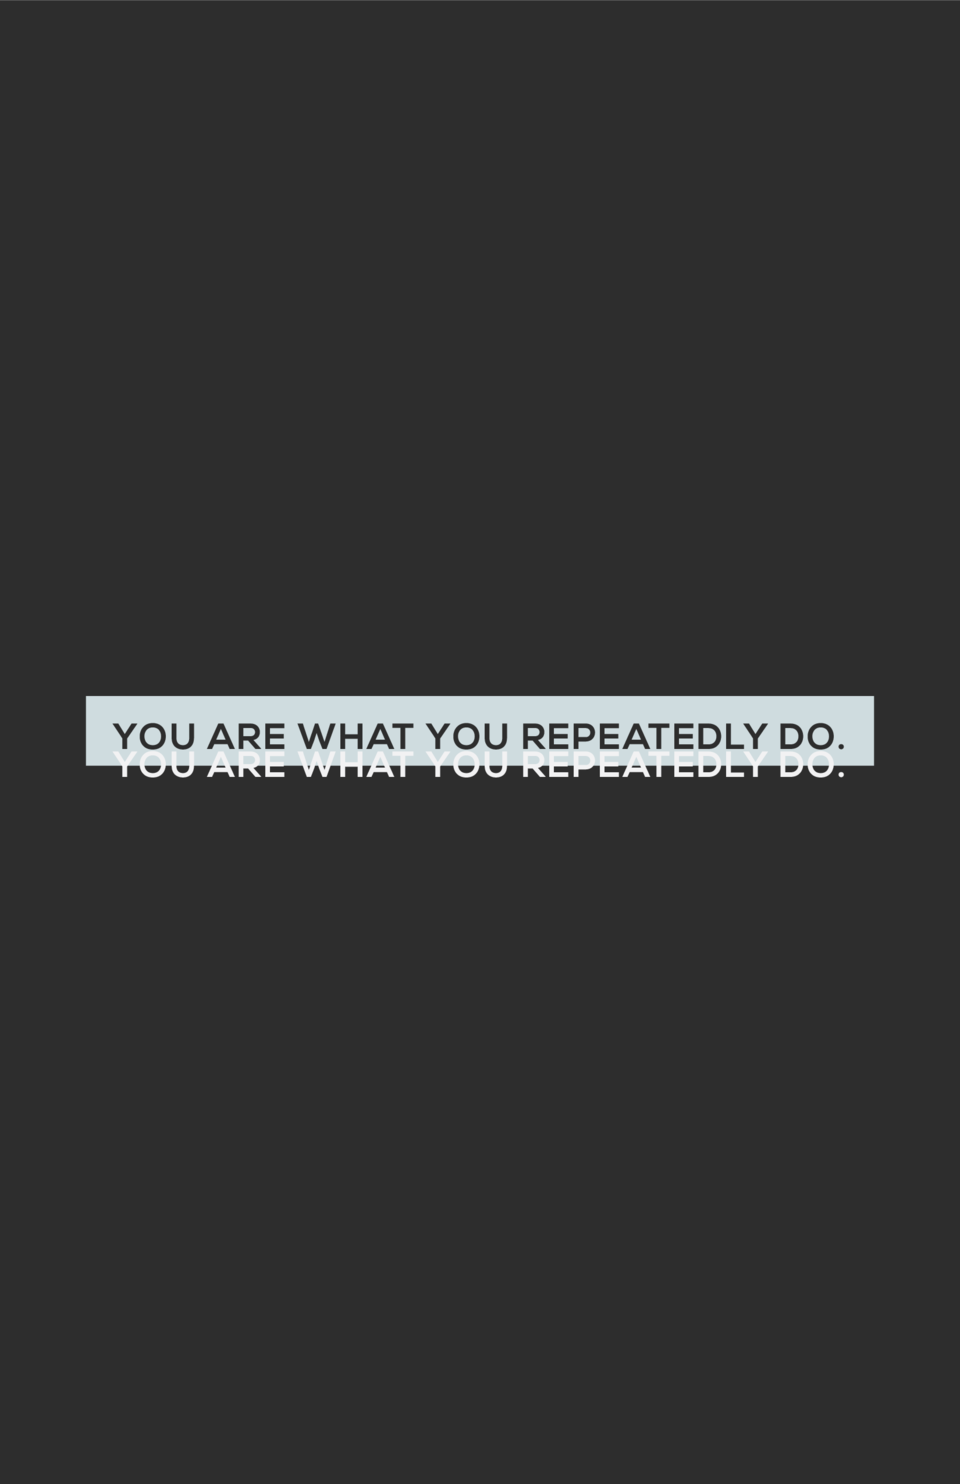 YOU ARE WHAT YOU REPEATEDLY DO. YOU ARE WHAT YOU REPEATEDLY DO.